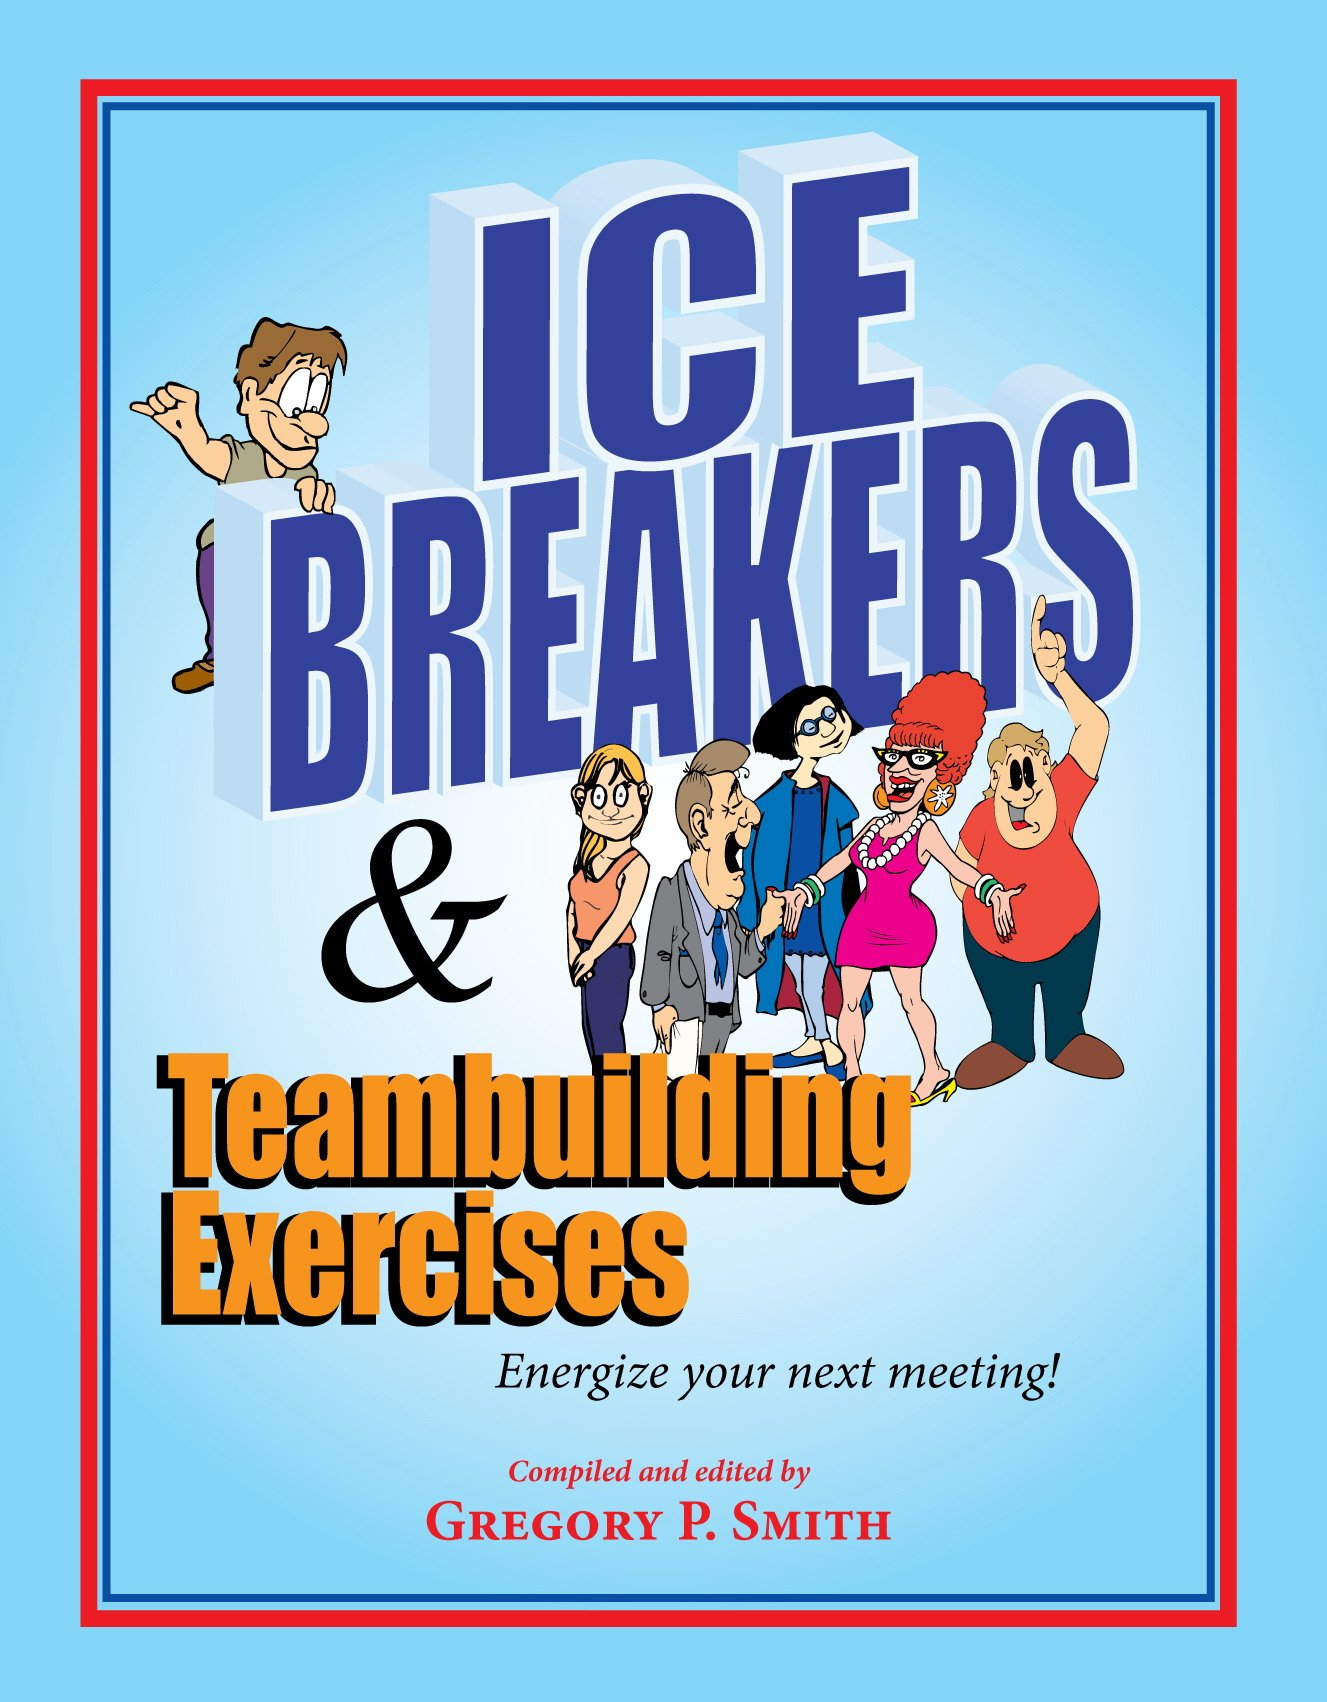 Free Team Building Exercises - Ice Breakers and Teambuilding Games